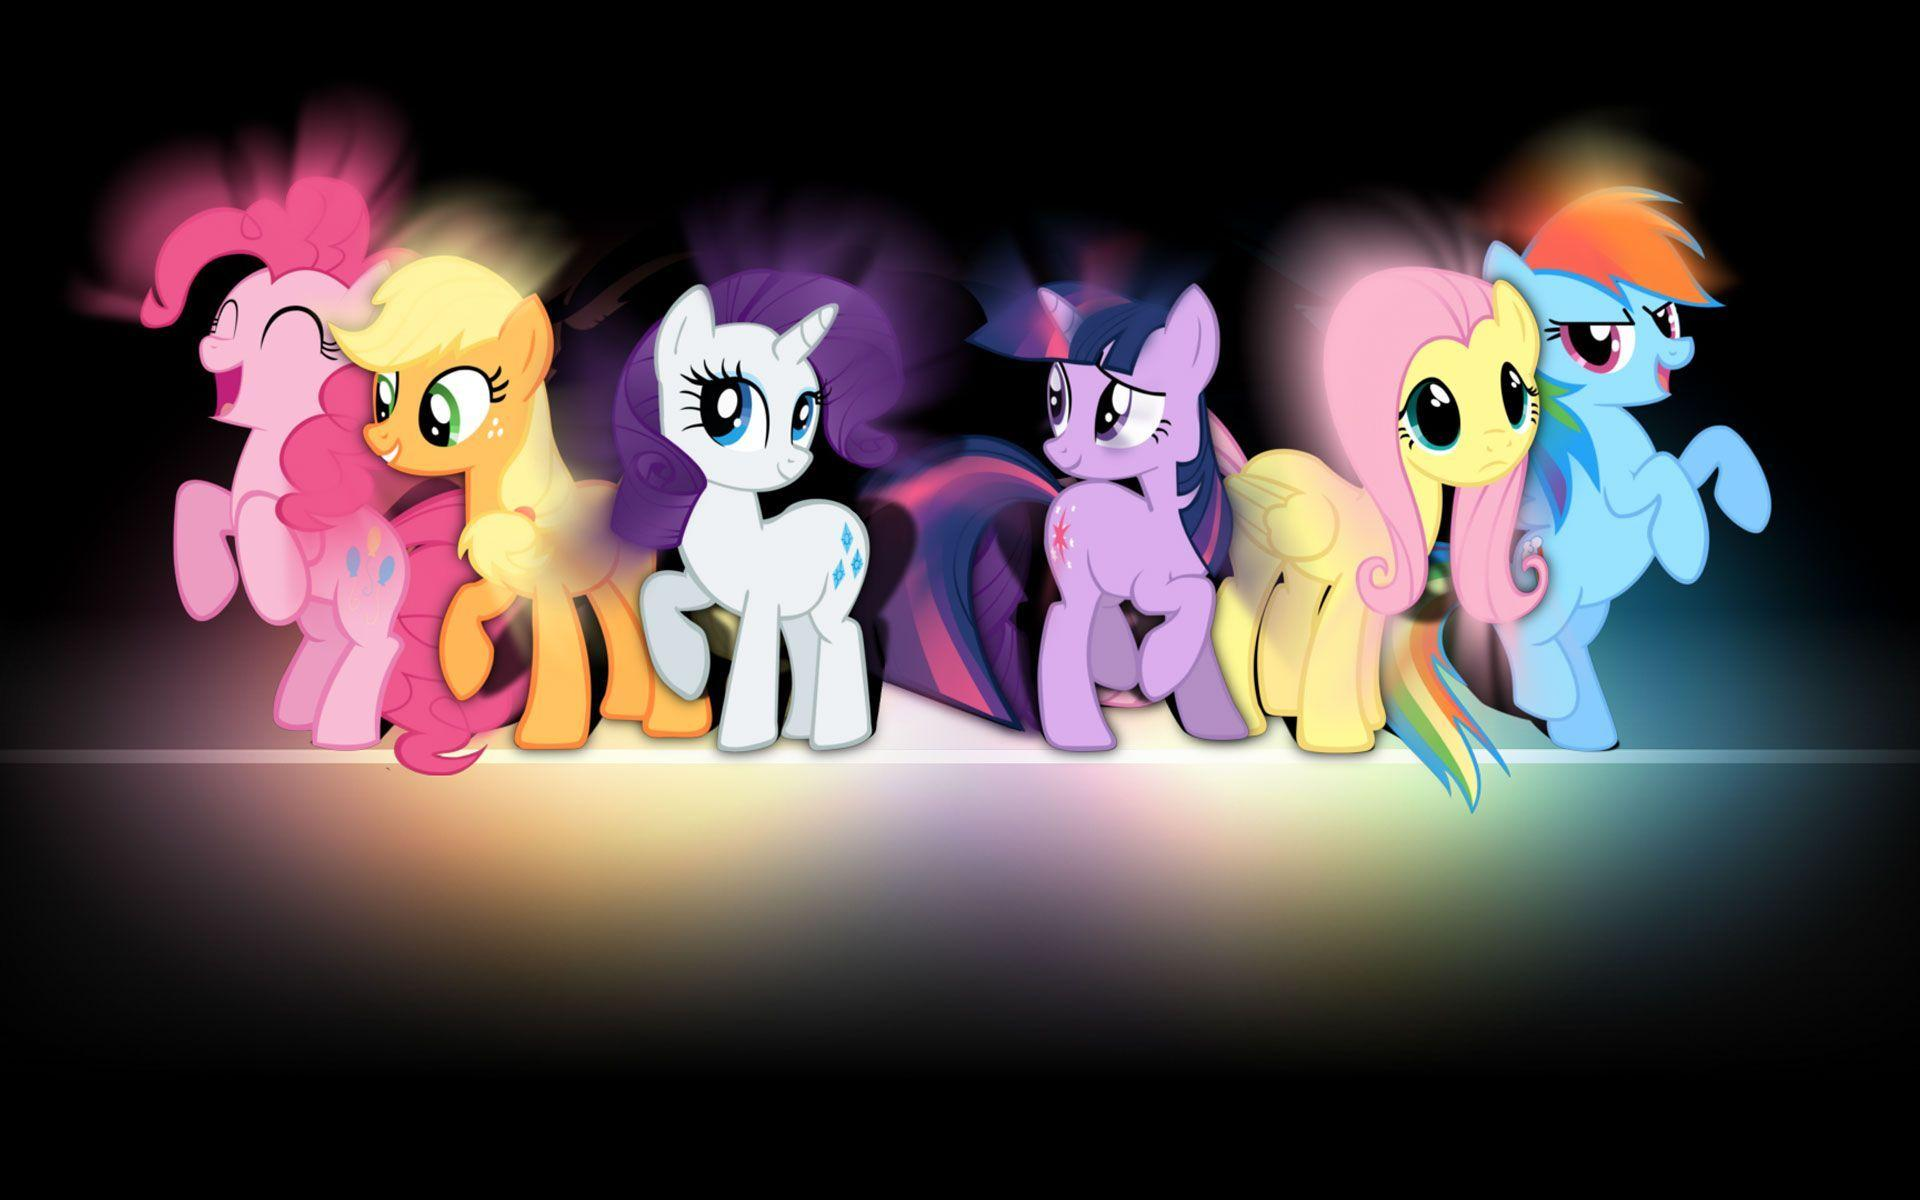 mlp background pony wallpapers - photo #17